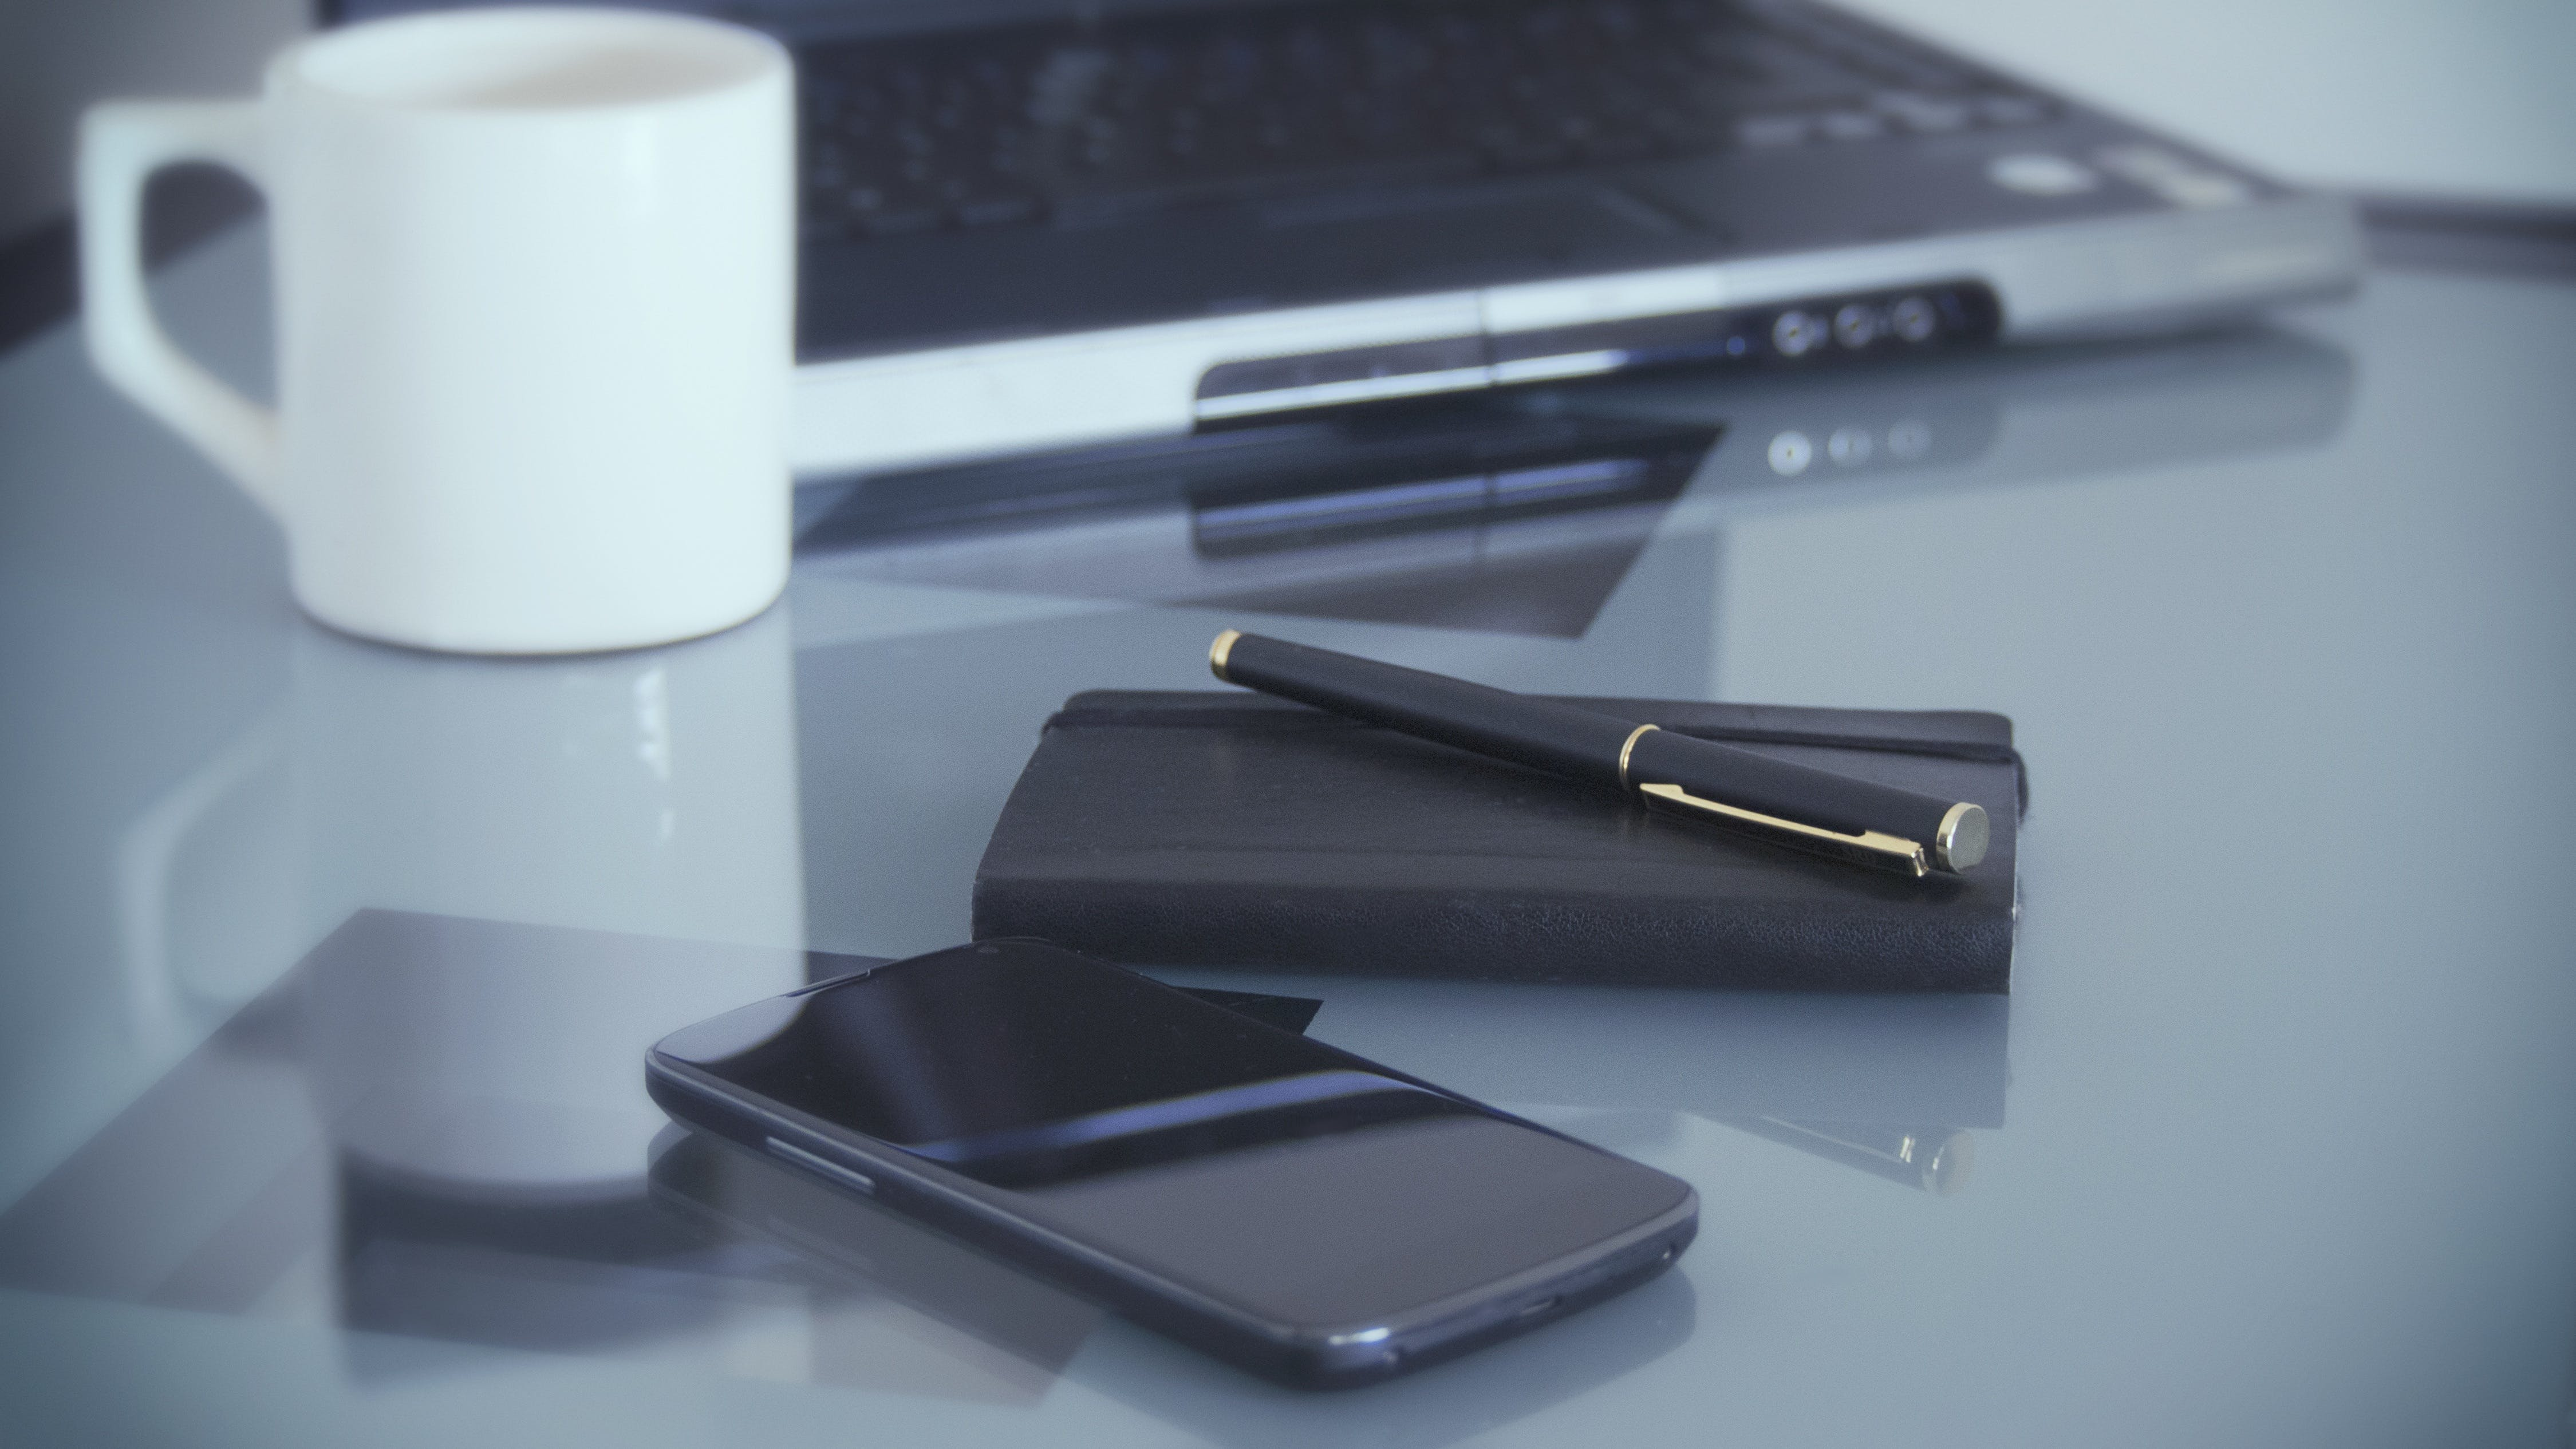 Free stock photo of coffee, smartphone, laptop, notebook